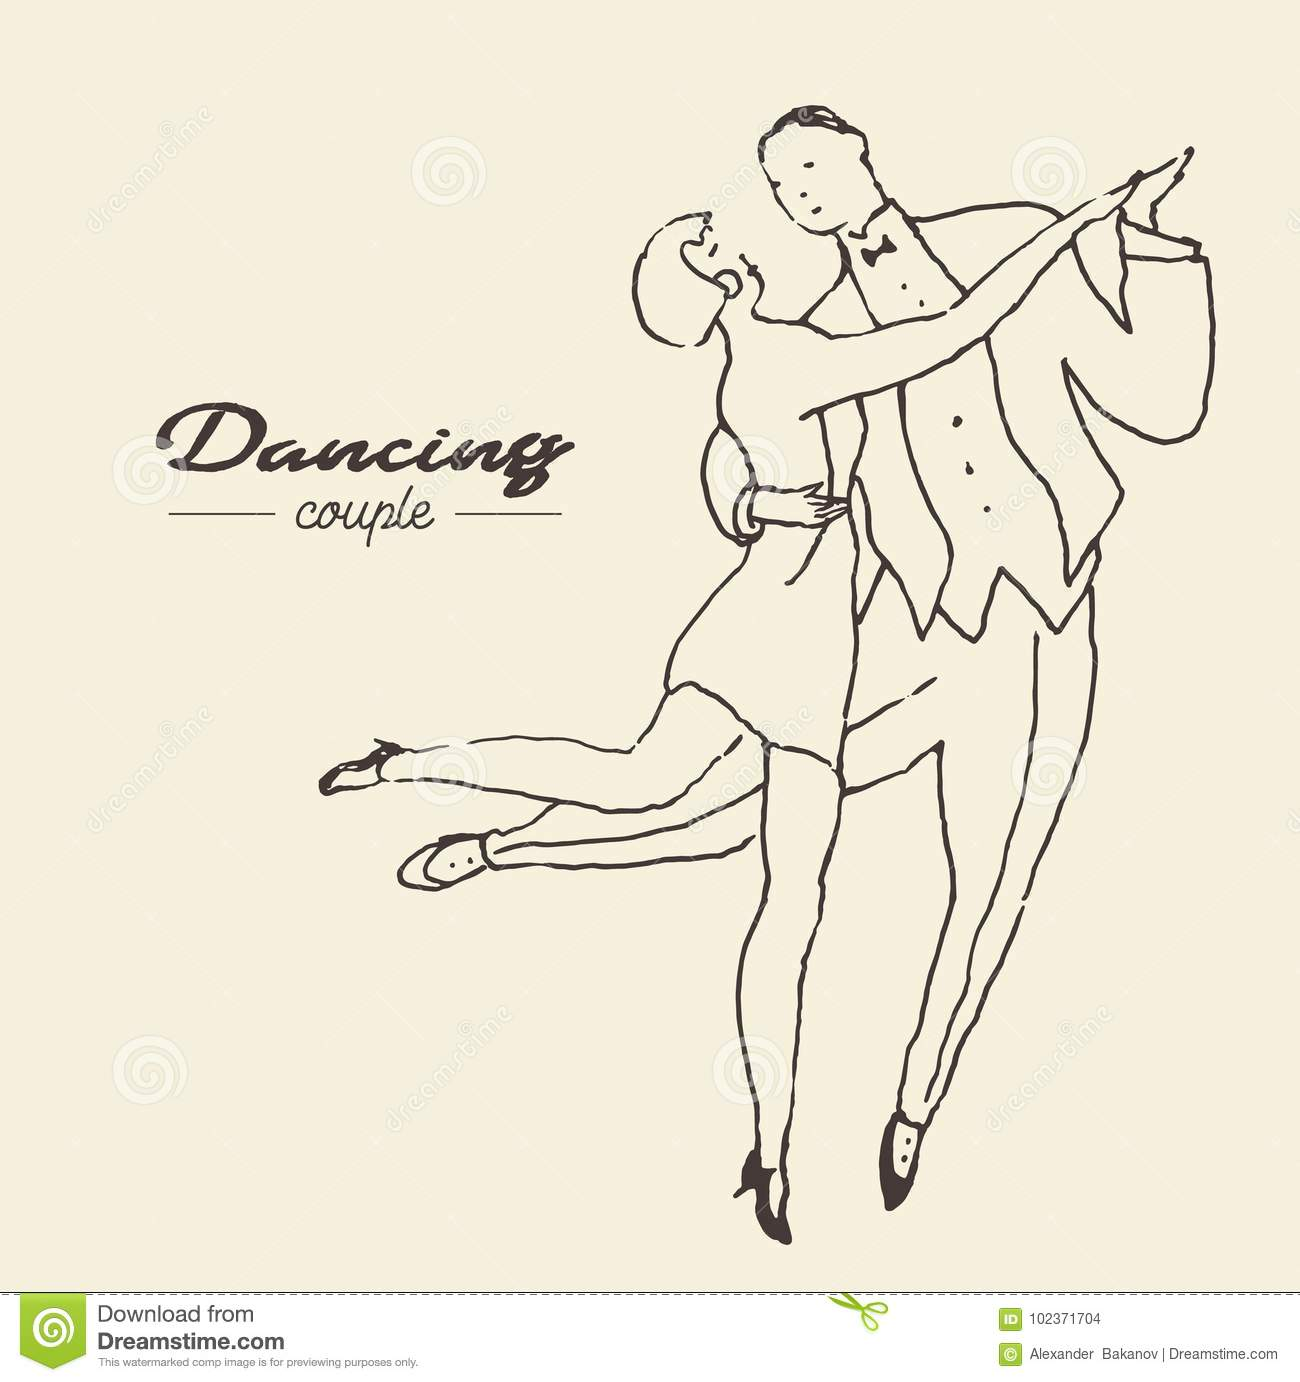 Dancing couples hand drawn vector illustration sketch